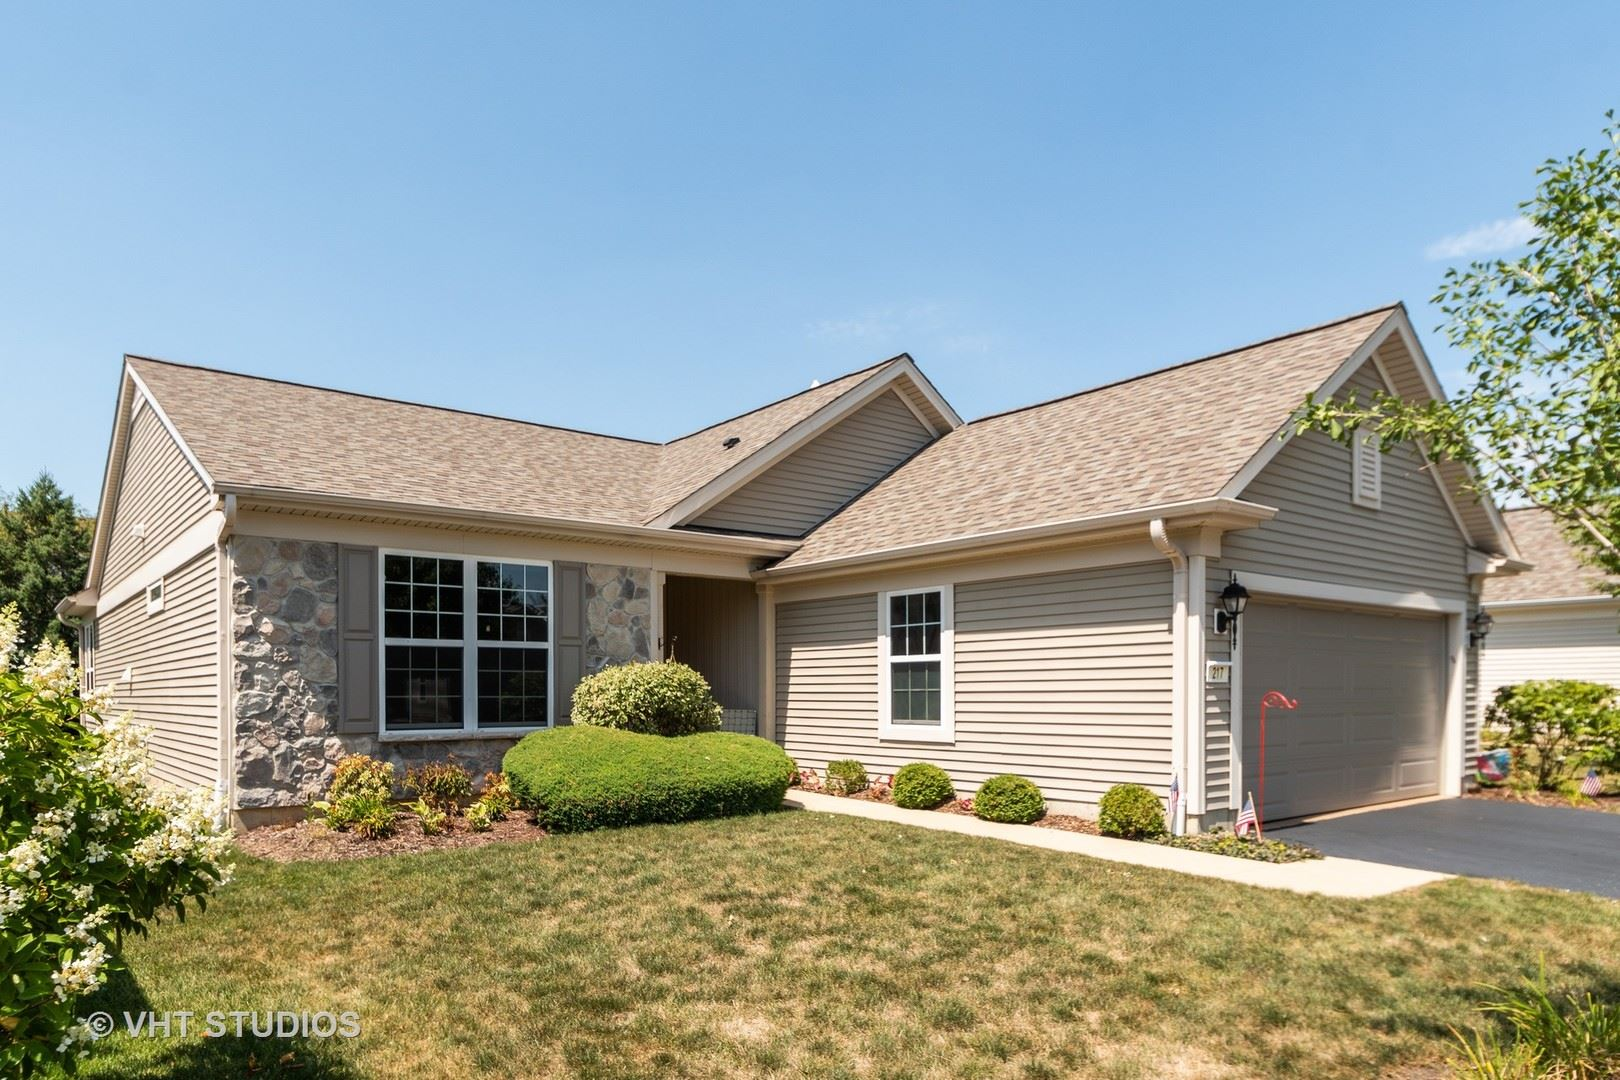 Photo of 217 NATIONAL Drive, Shorewood, IL 60404 (MLS # 10819701)